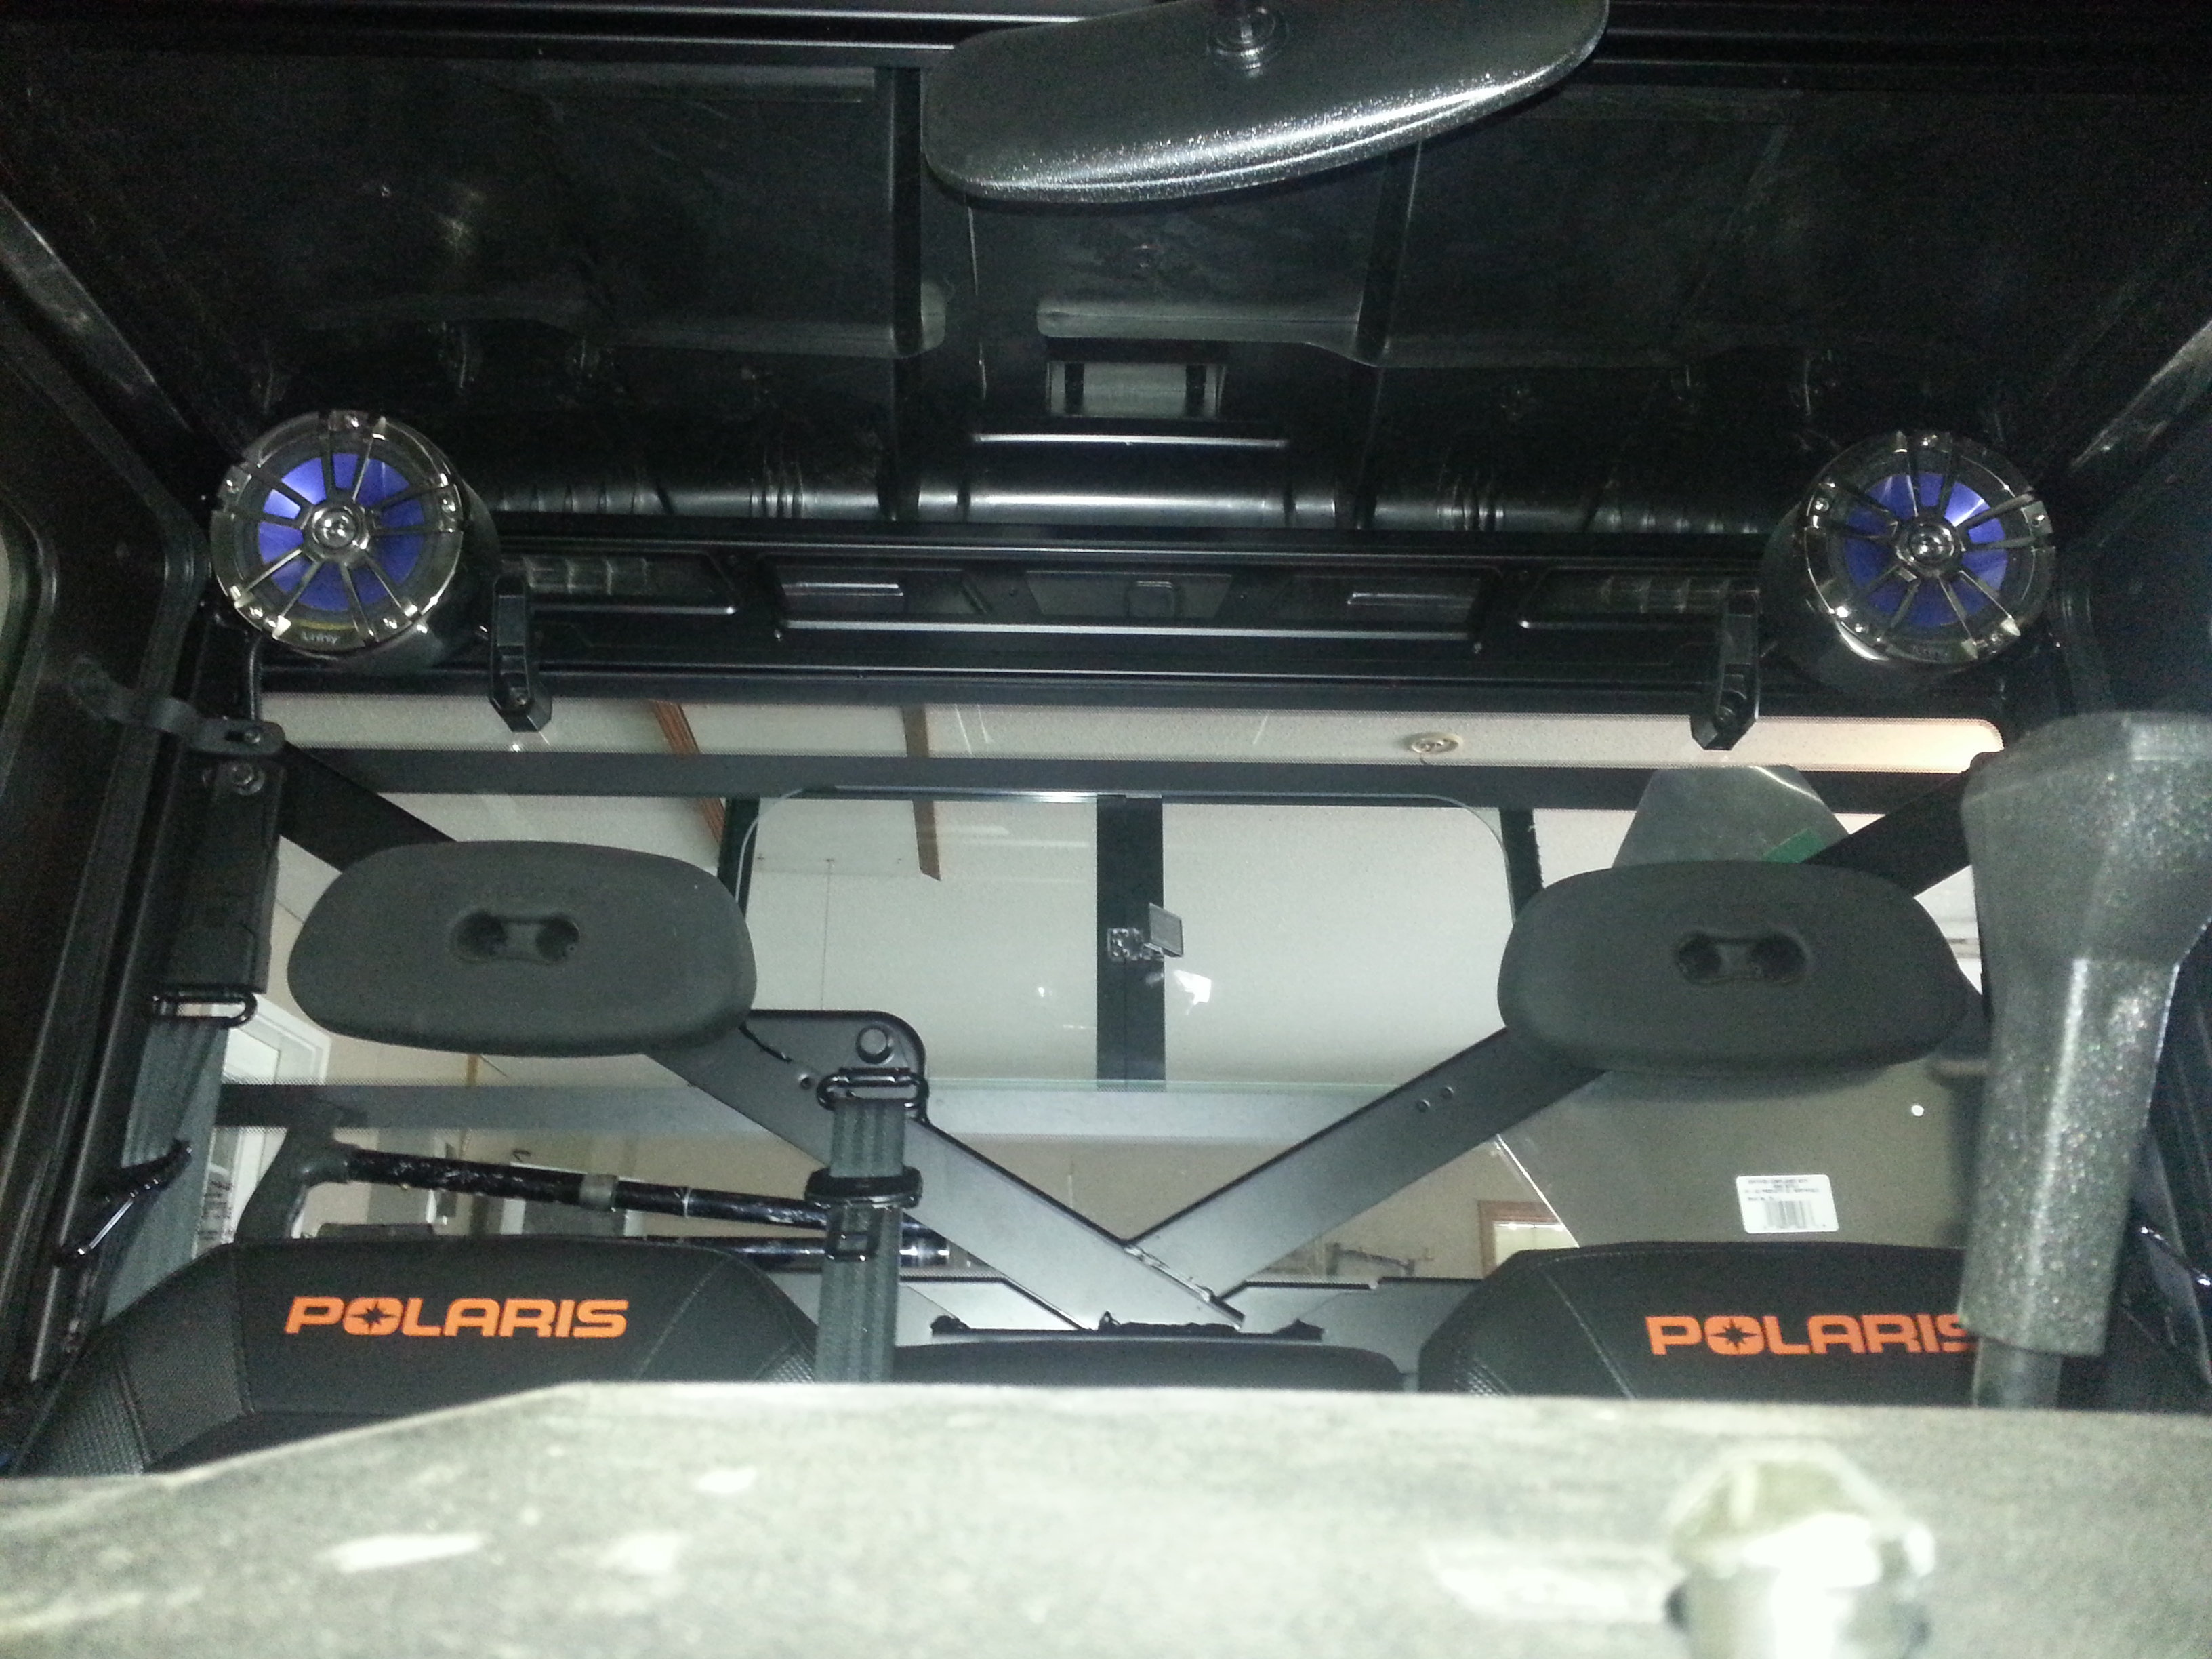 What Wires On Polaris Radio To Add 2 More Speakers